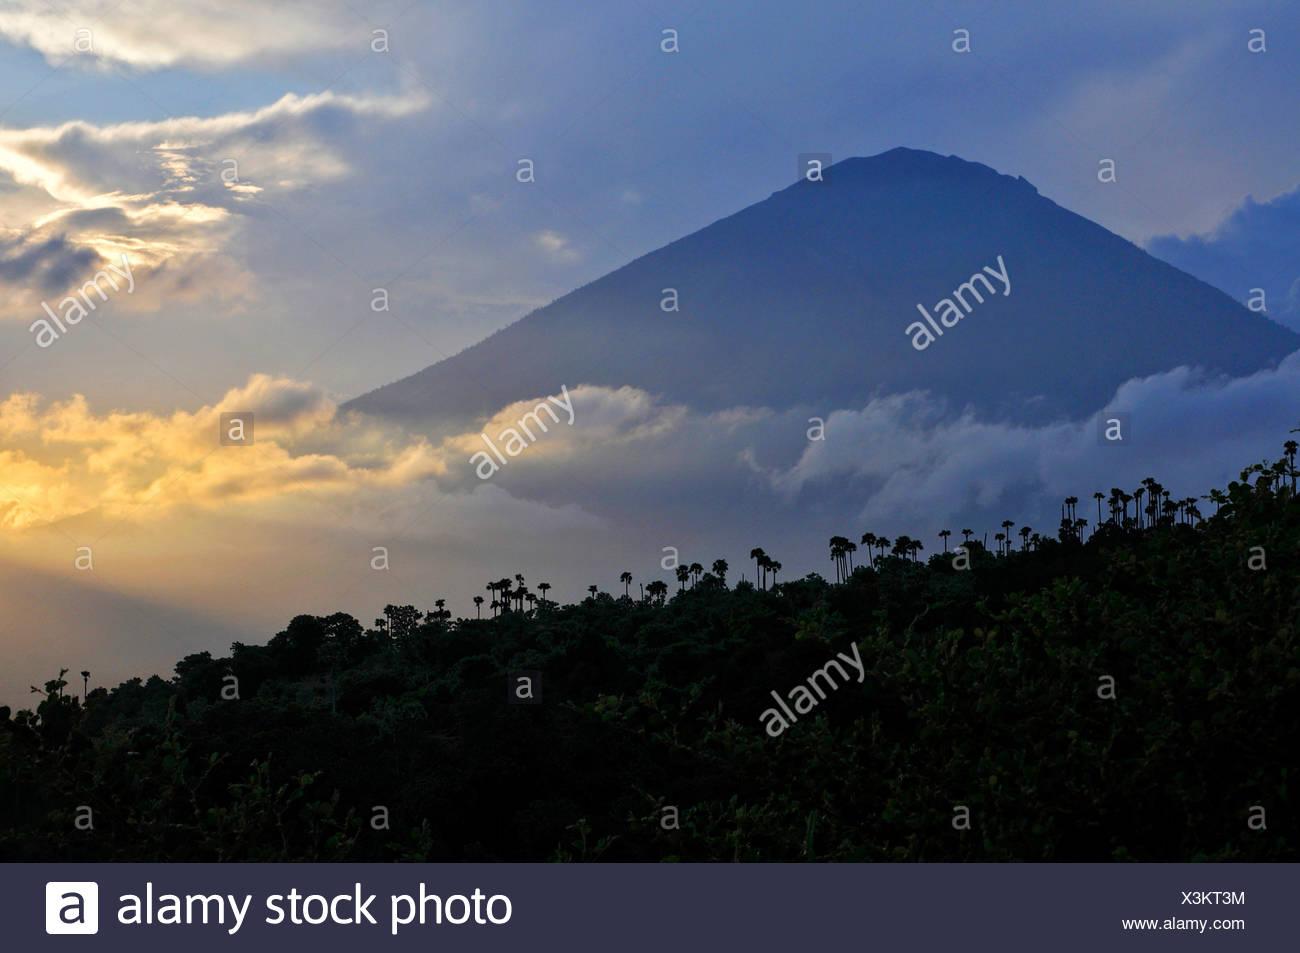 Sunset with the volcano Gunung Agung in Amed, Bali, Indonesia, Southeast Asia - Stock Image